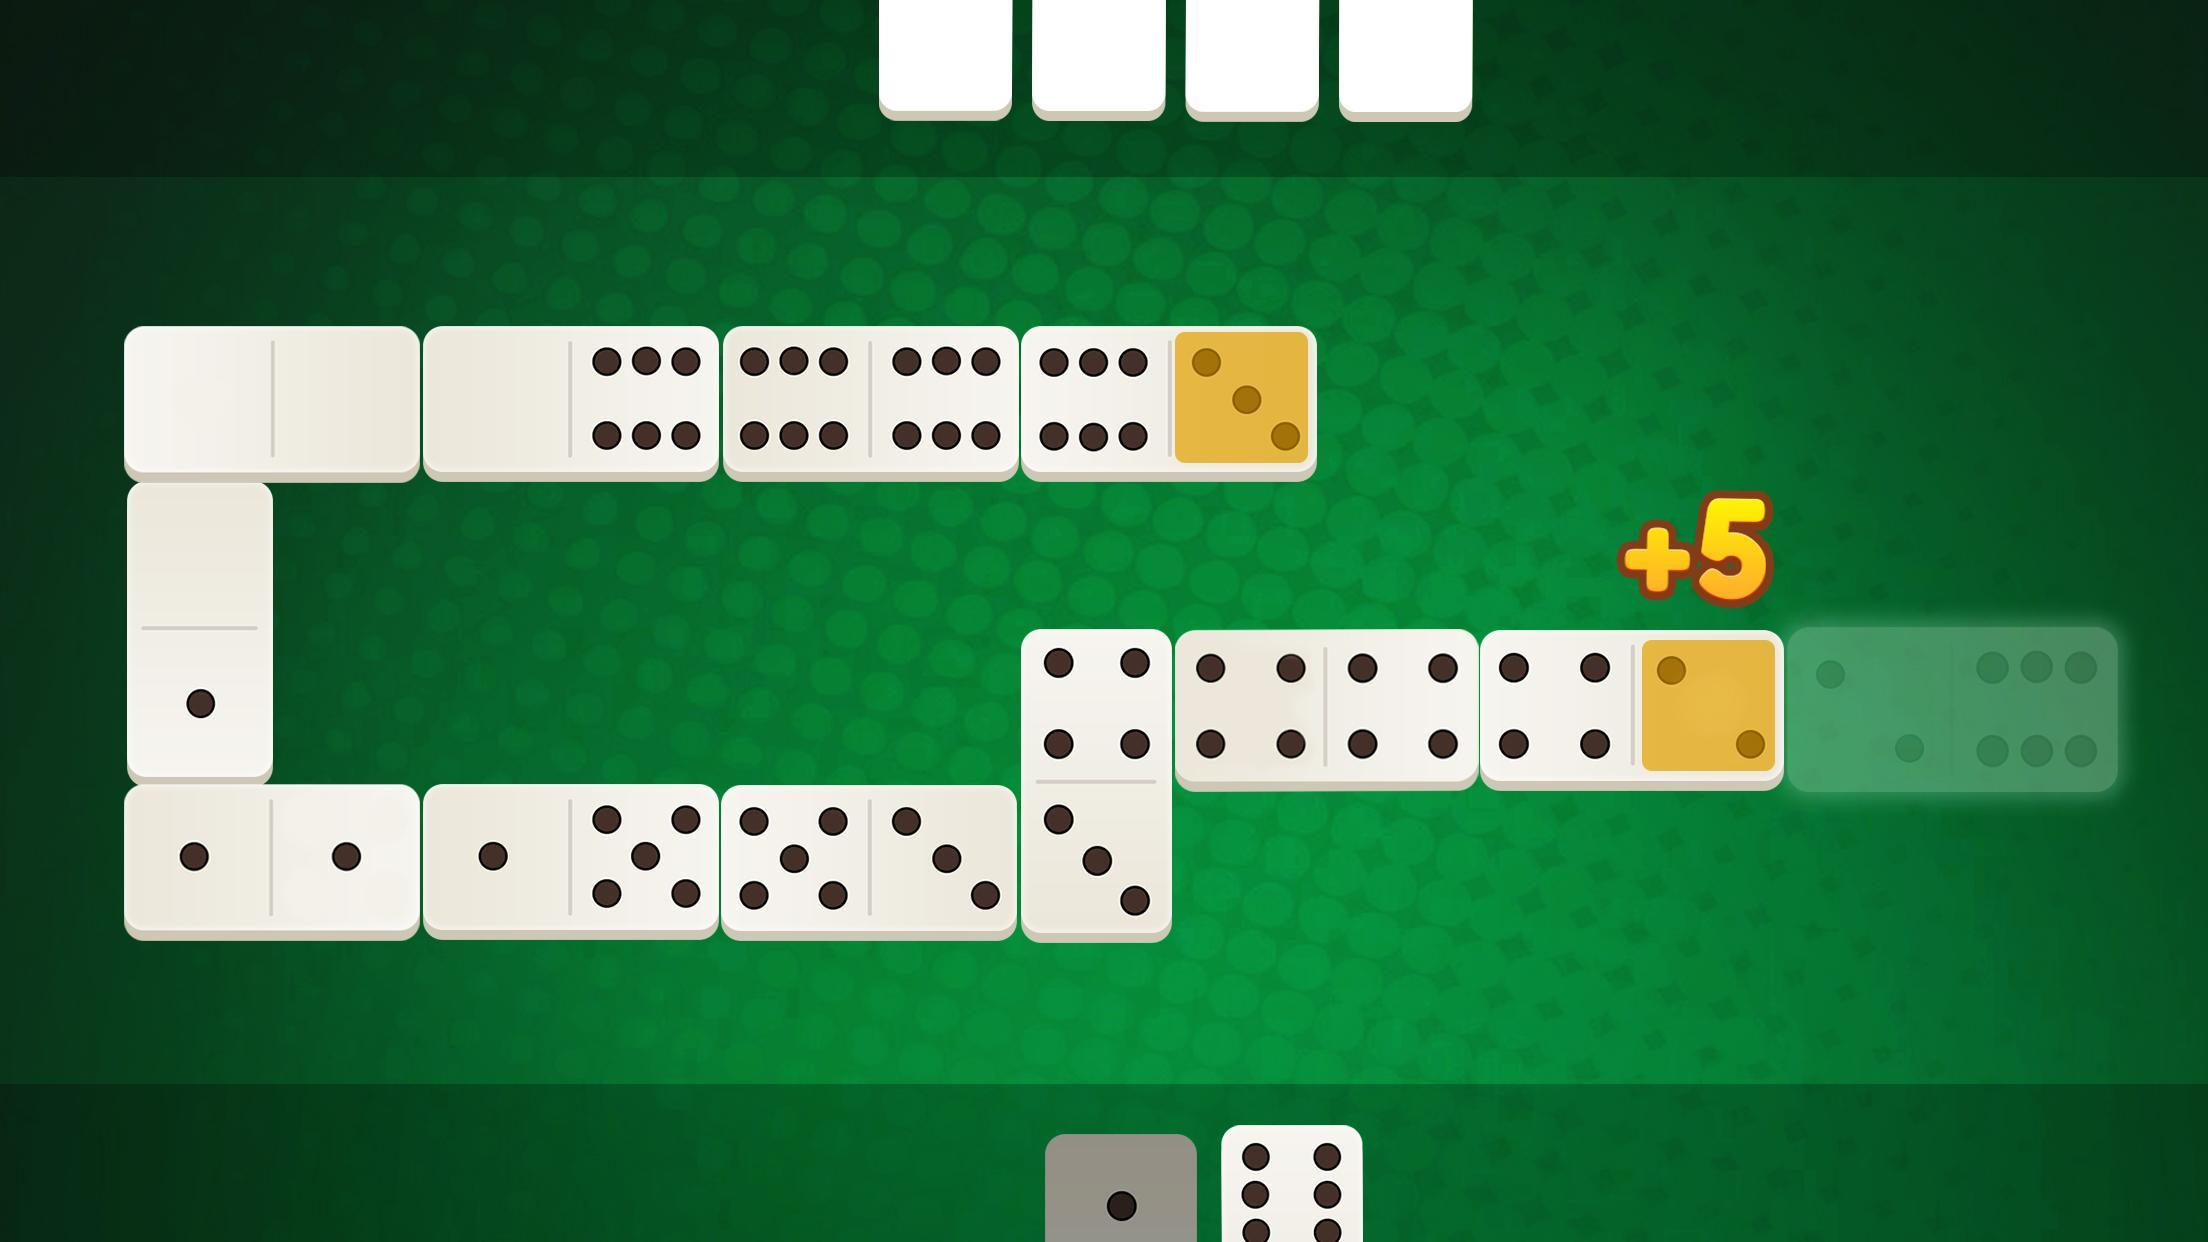 Dominos Party - Classic Domino Board Game 4.9.4 Screenshot 24